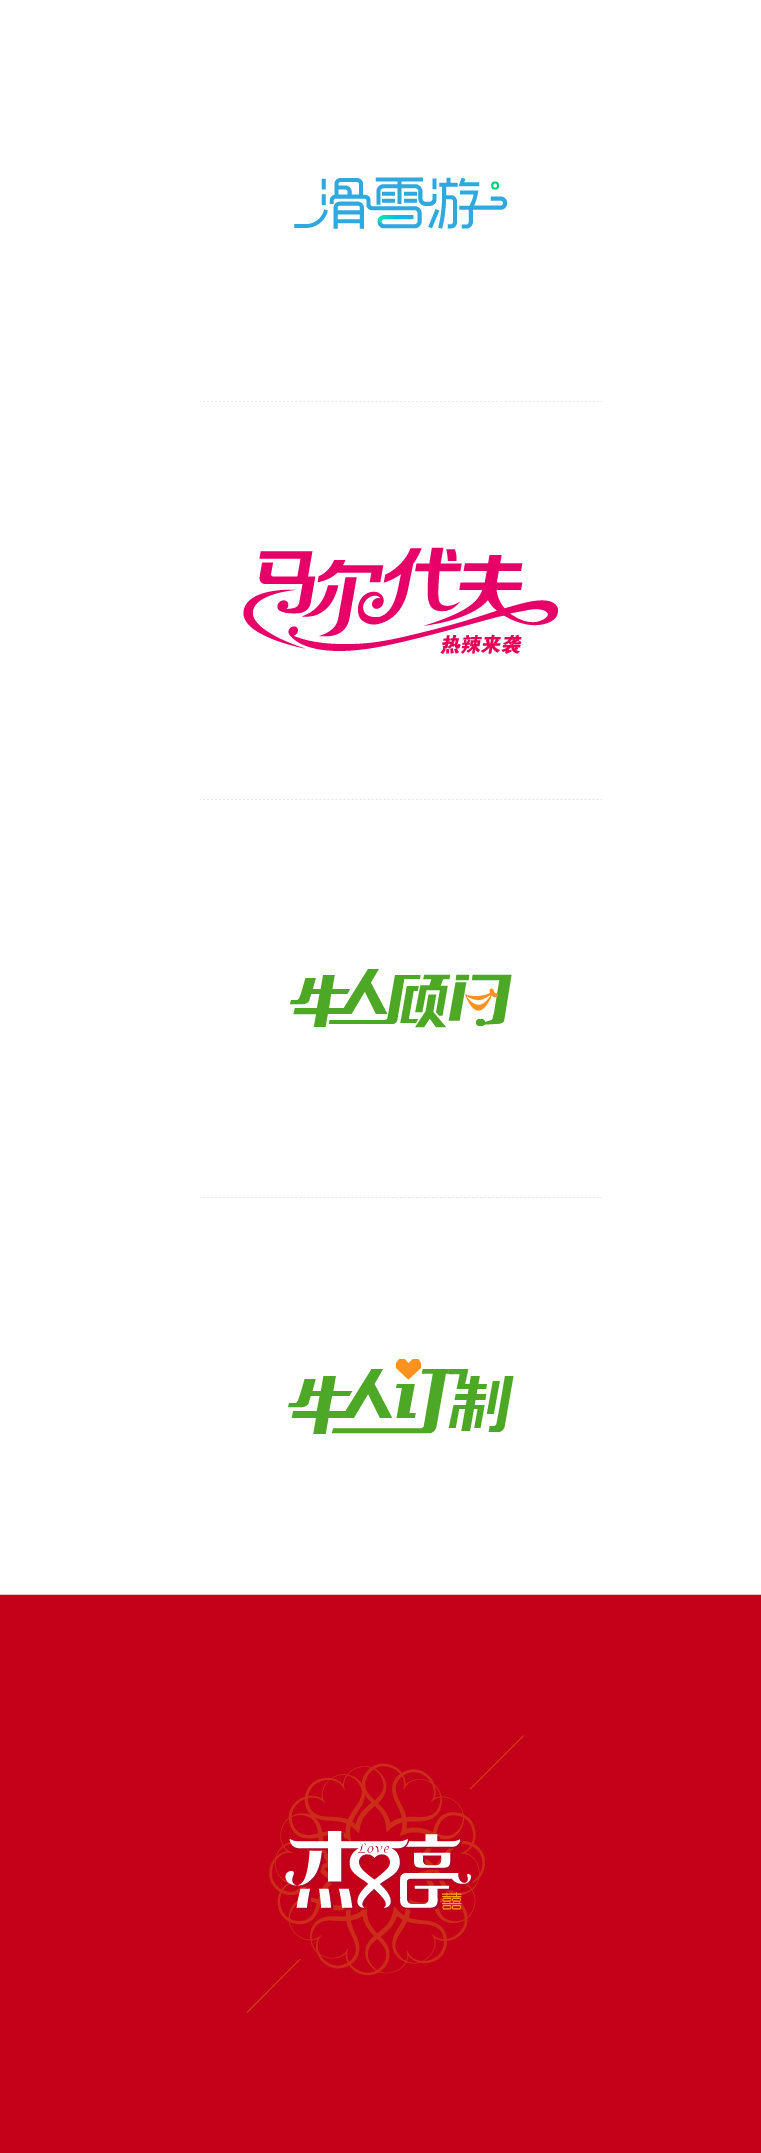 chinesefontdesign.com 2016 09 09 17 11 54 220+ Creative Chinese Font Logo Designs Cool ideas